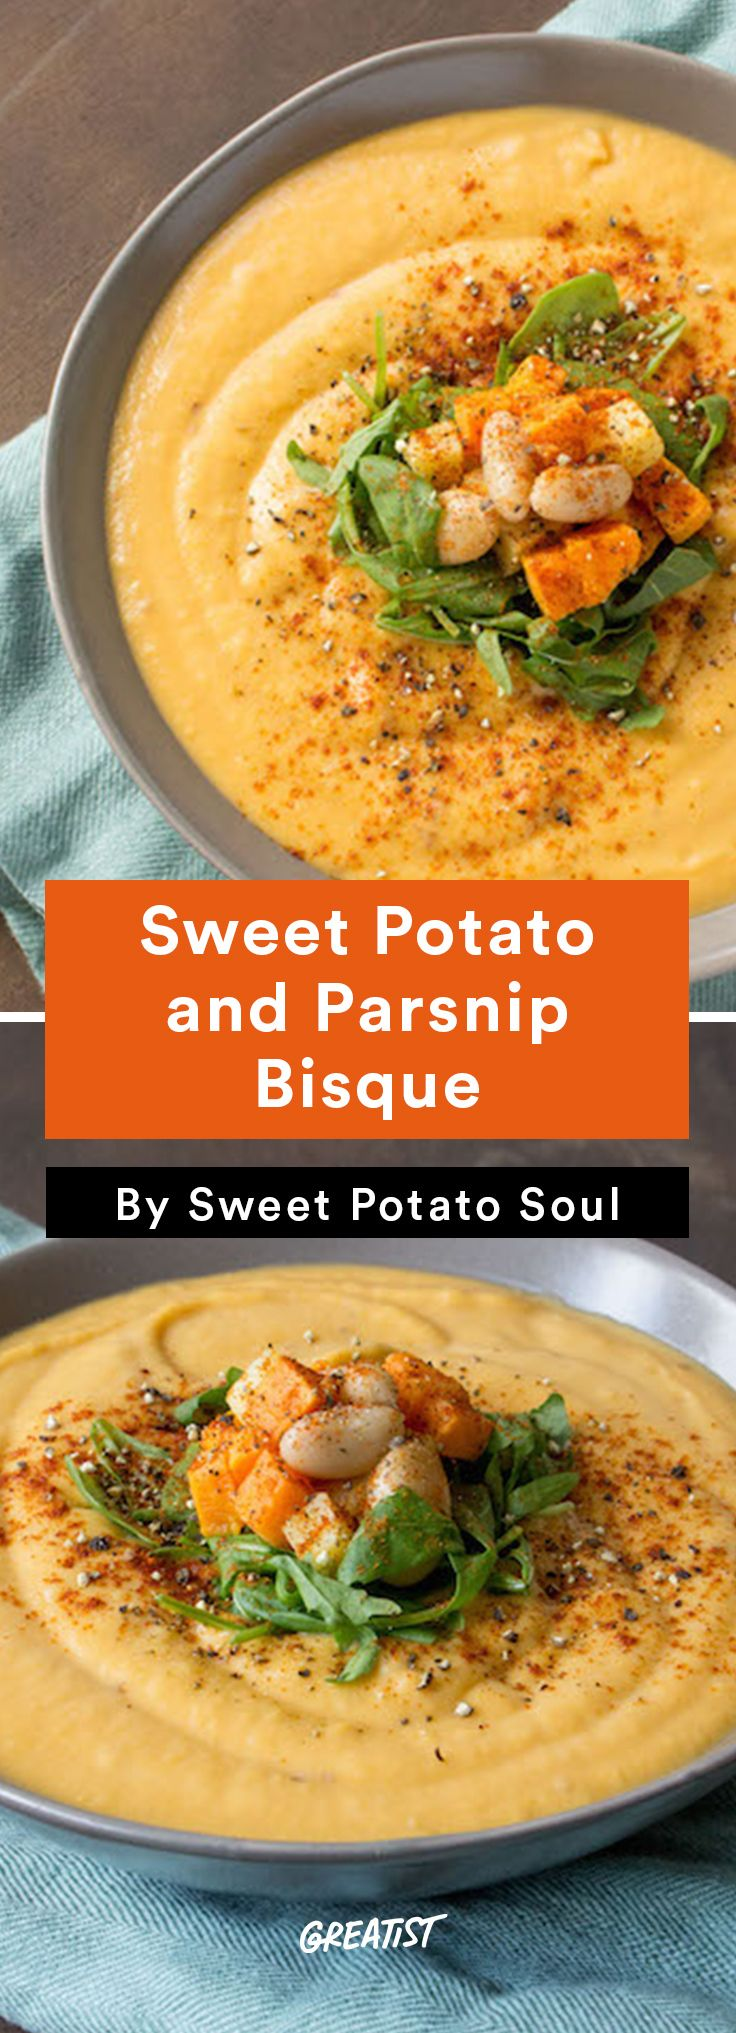 8. Sweet Potato and Parsnip Bisque #sweet #potato #recipes http://greatist.com/eat/sweet-potato-recipes-for-every-meal